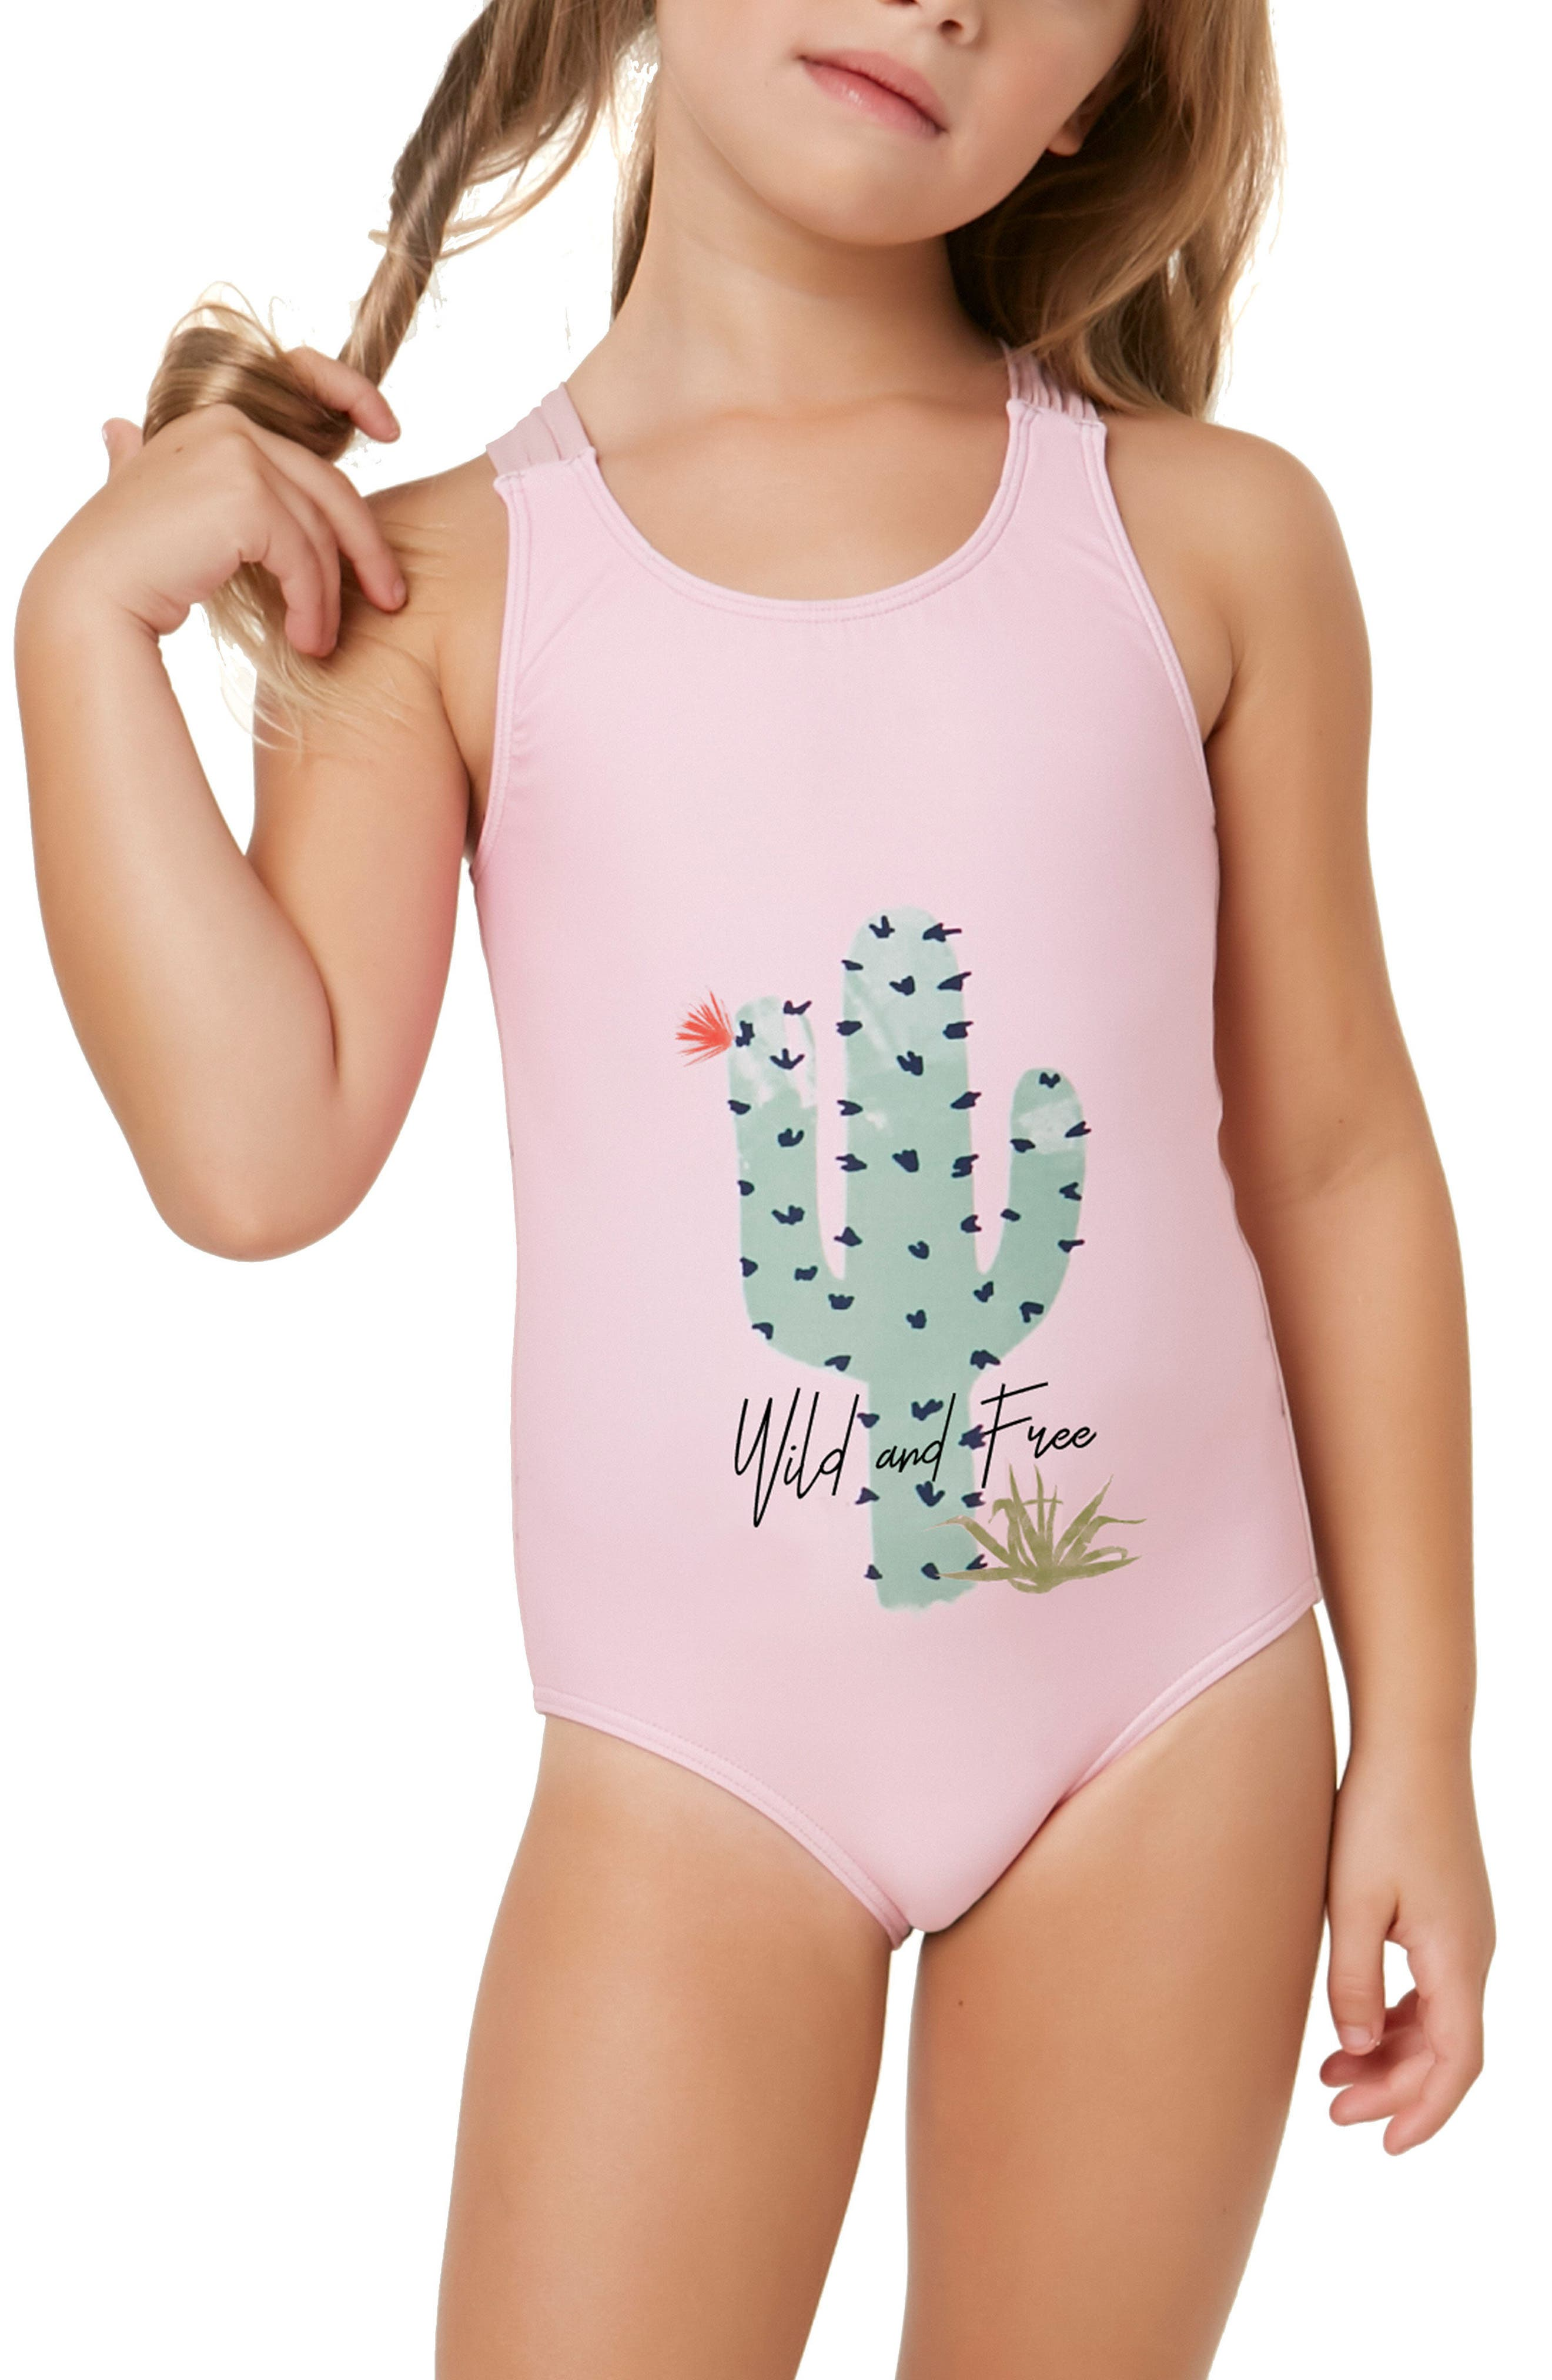 Cacti One-Piece Swimsuit,                             Main thumbnail 1, color,                             CACTI